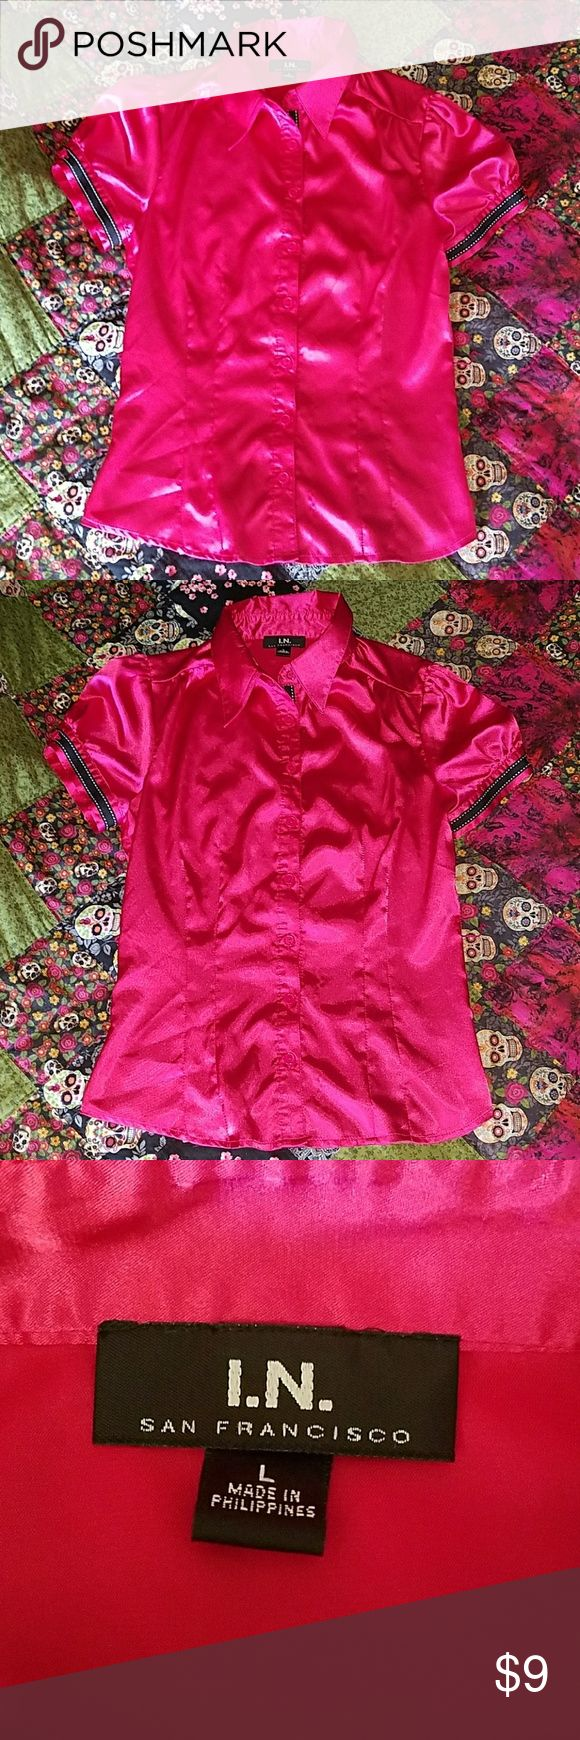 Hot pink blouse Hot pink blouse with cute black and white detailing on the sleeves Comes with waist tie that matches the black and white on sleeves Gently used Waist tie loop on right hand side is unattached on 1 side I.N. San Francisco Tops Blouses